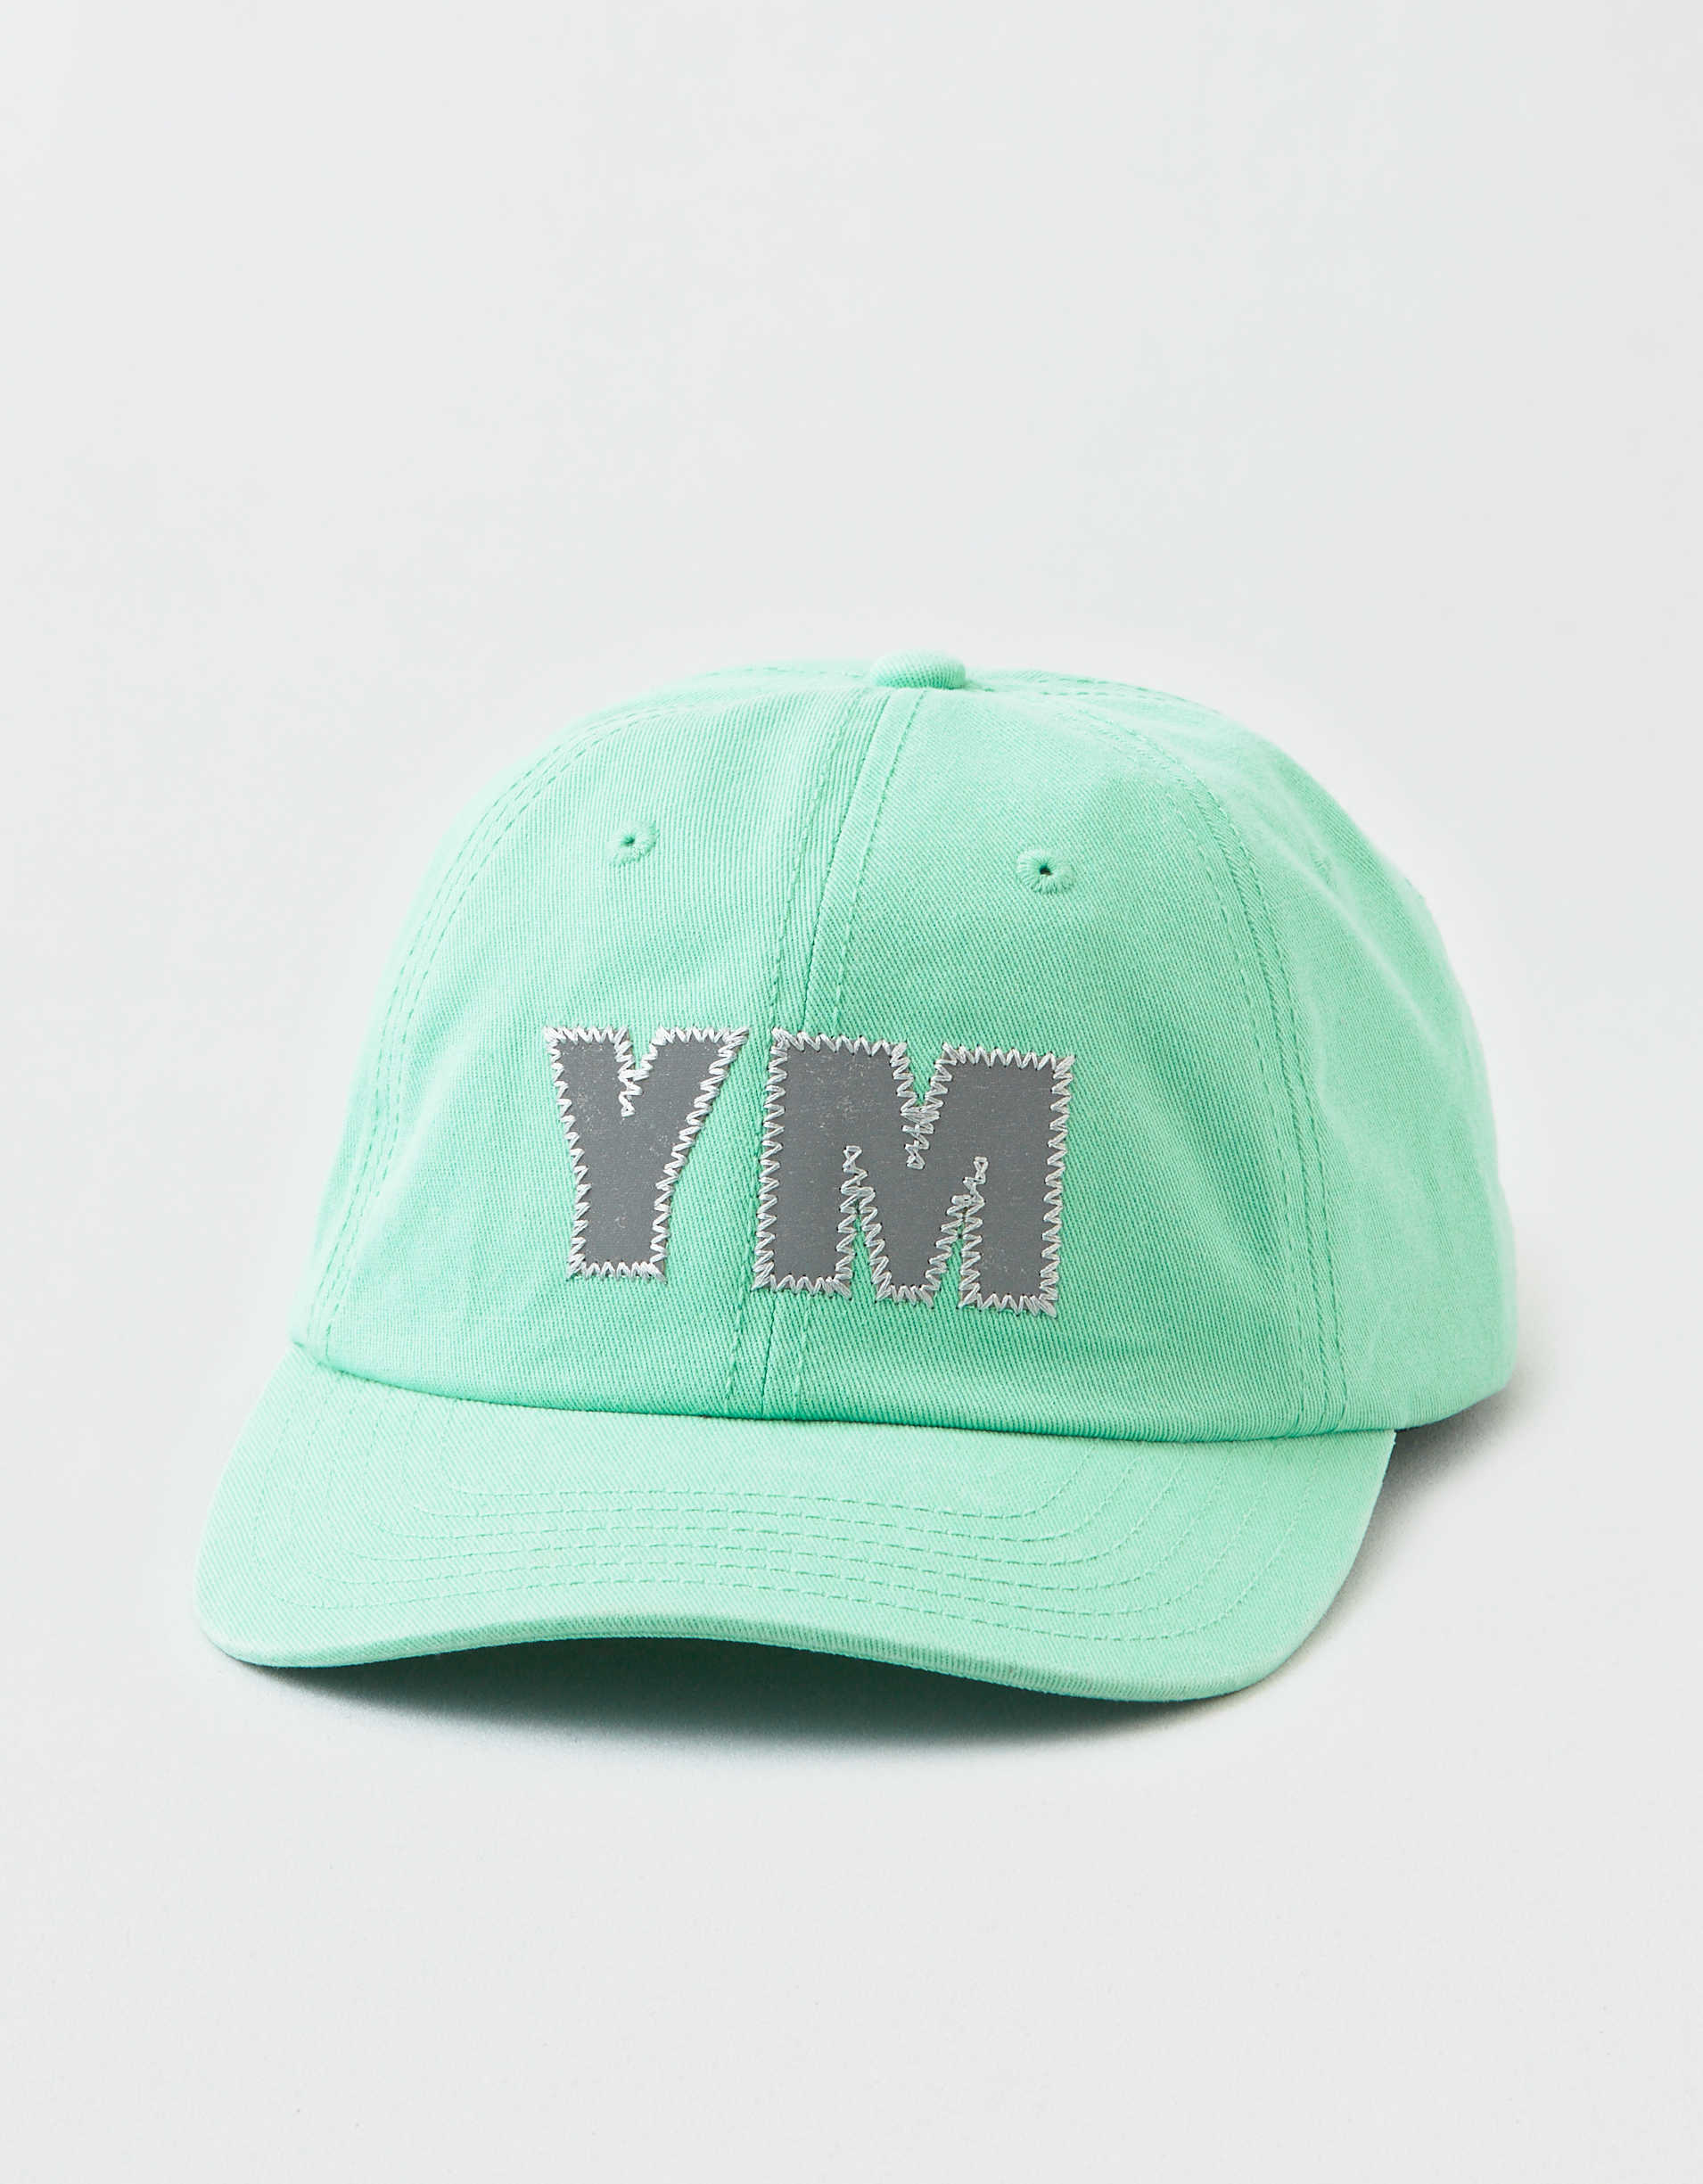 AE X Young Money Reflective Strapback Hat